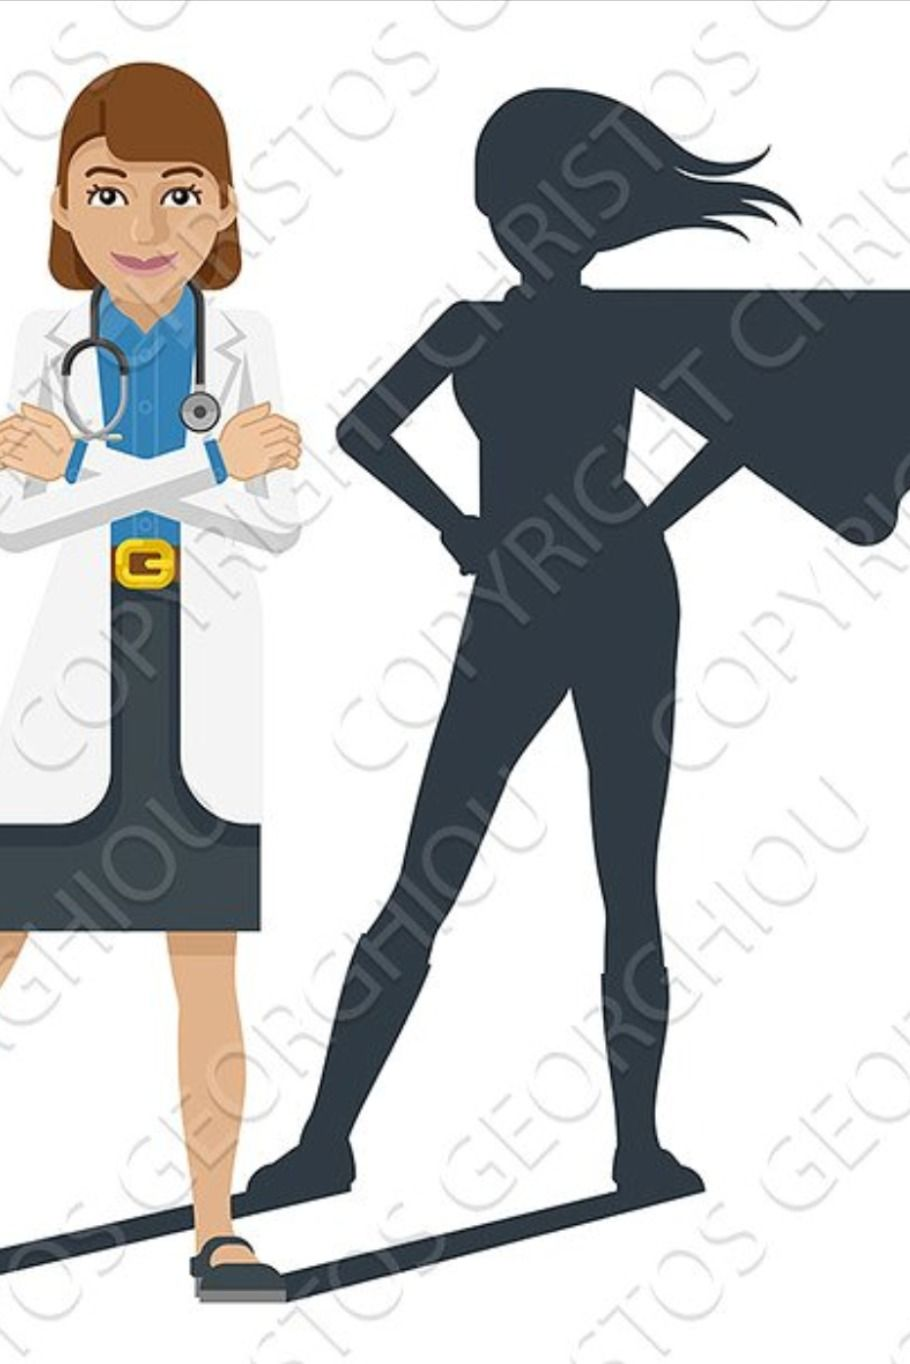 Young Medical Doctor Super Hero In 2020 Doctor Medical Women Medical Shadow Silhouette